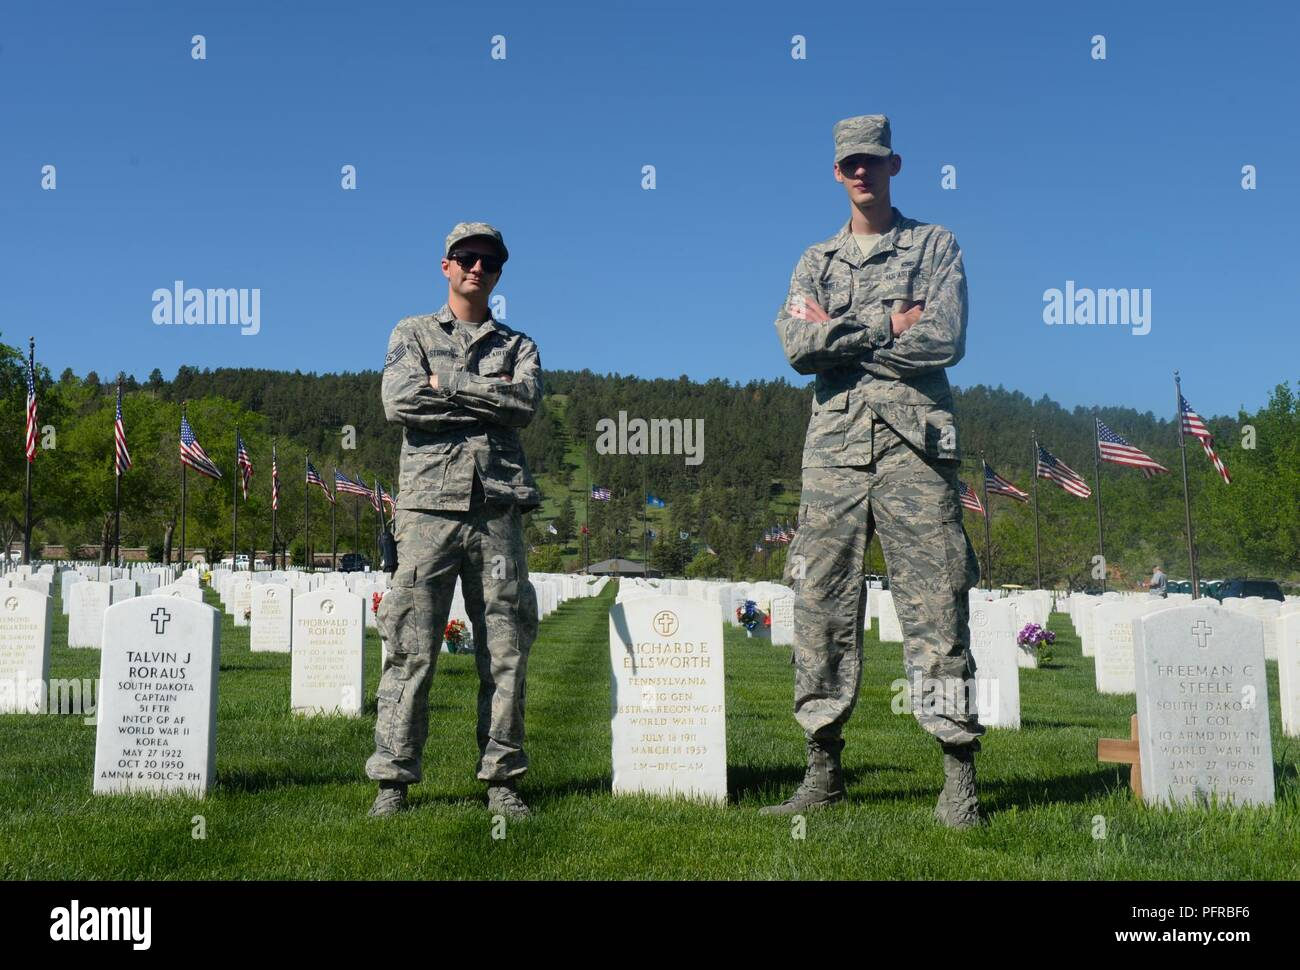 Army Group Stock Photos & Army Group Stock Images - Page 8 - Alamy